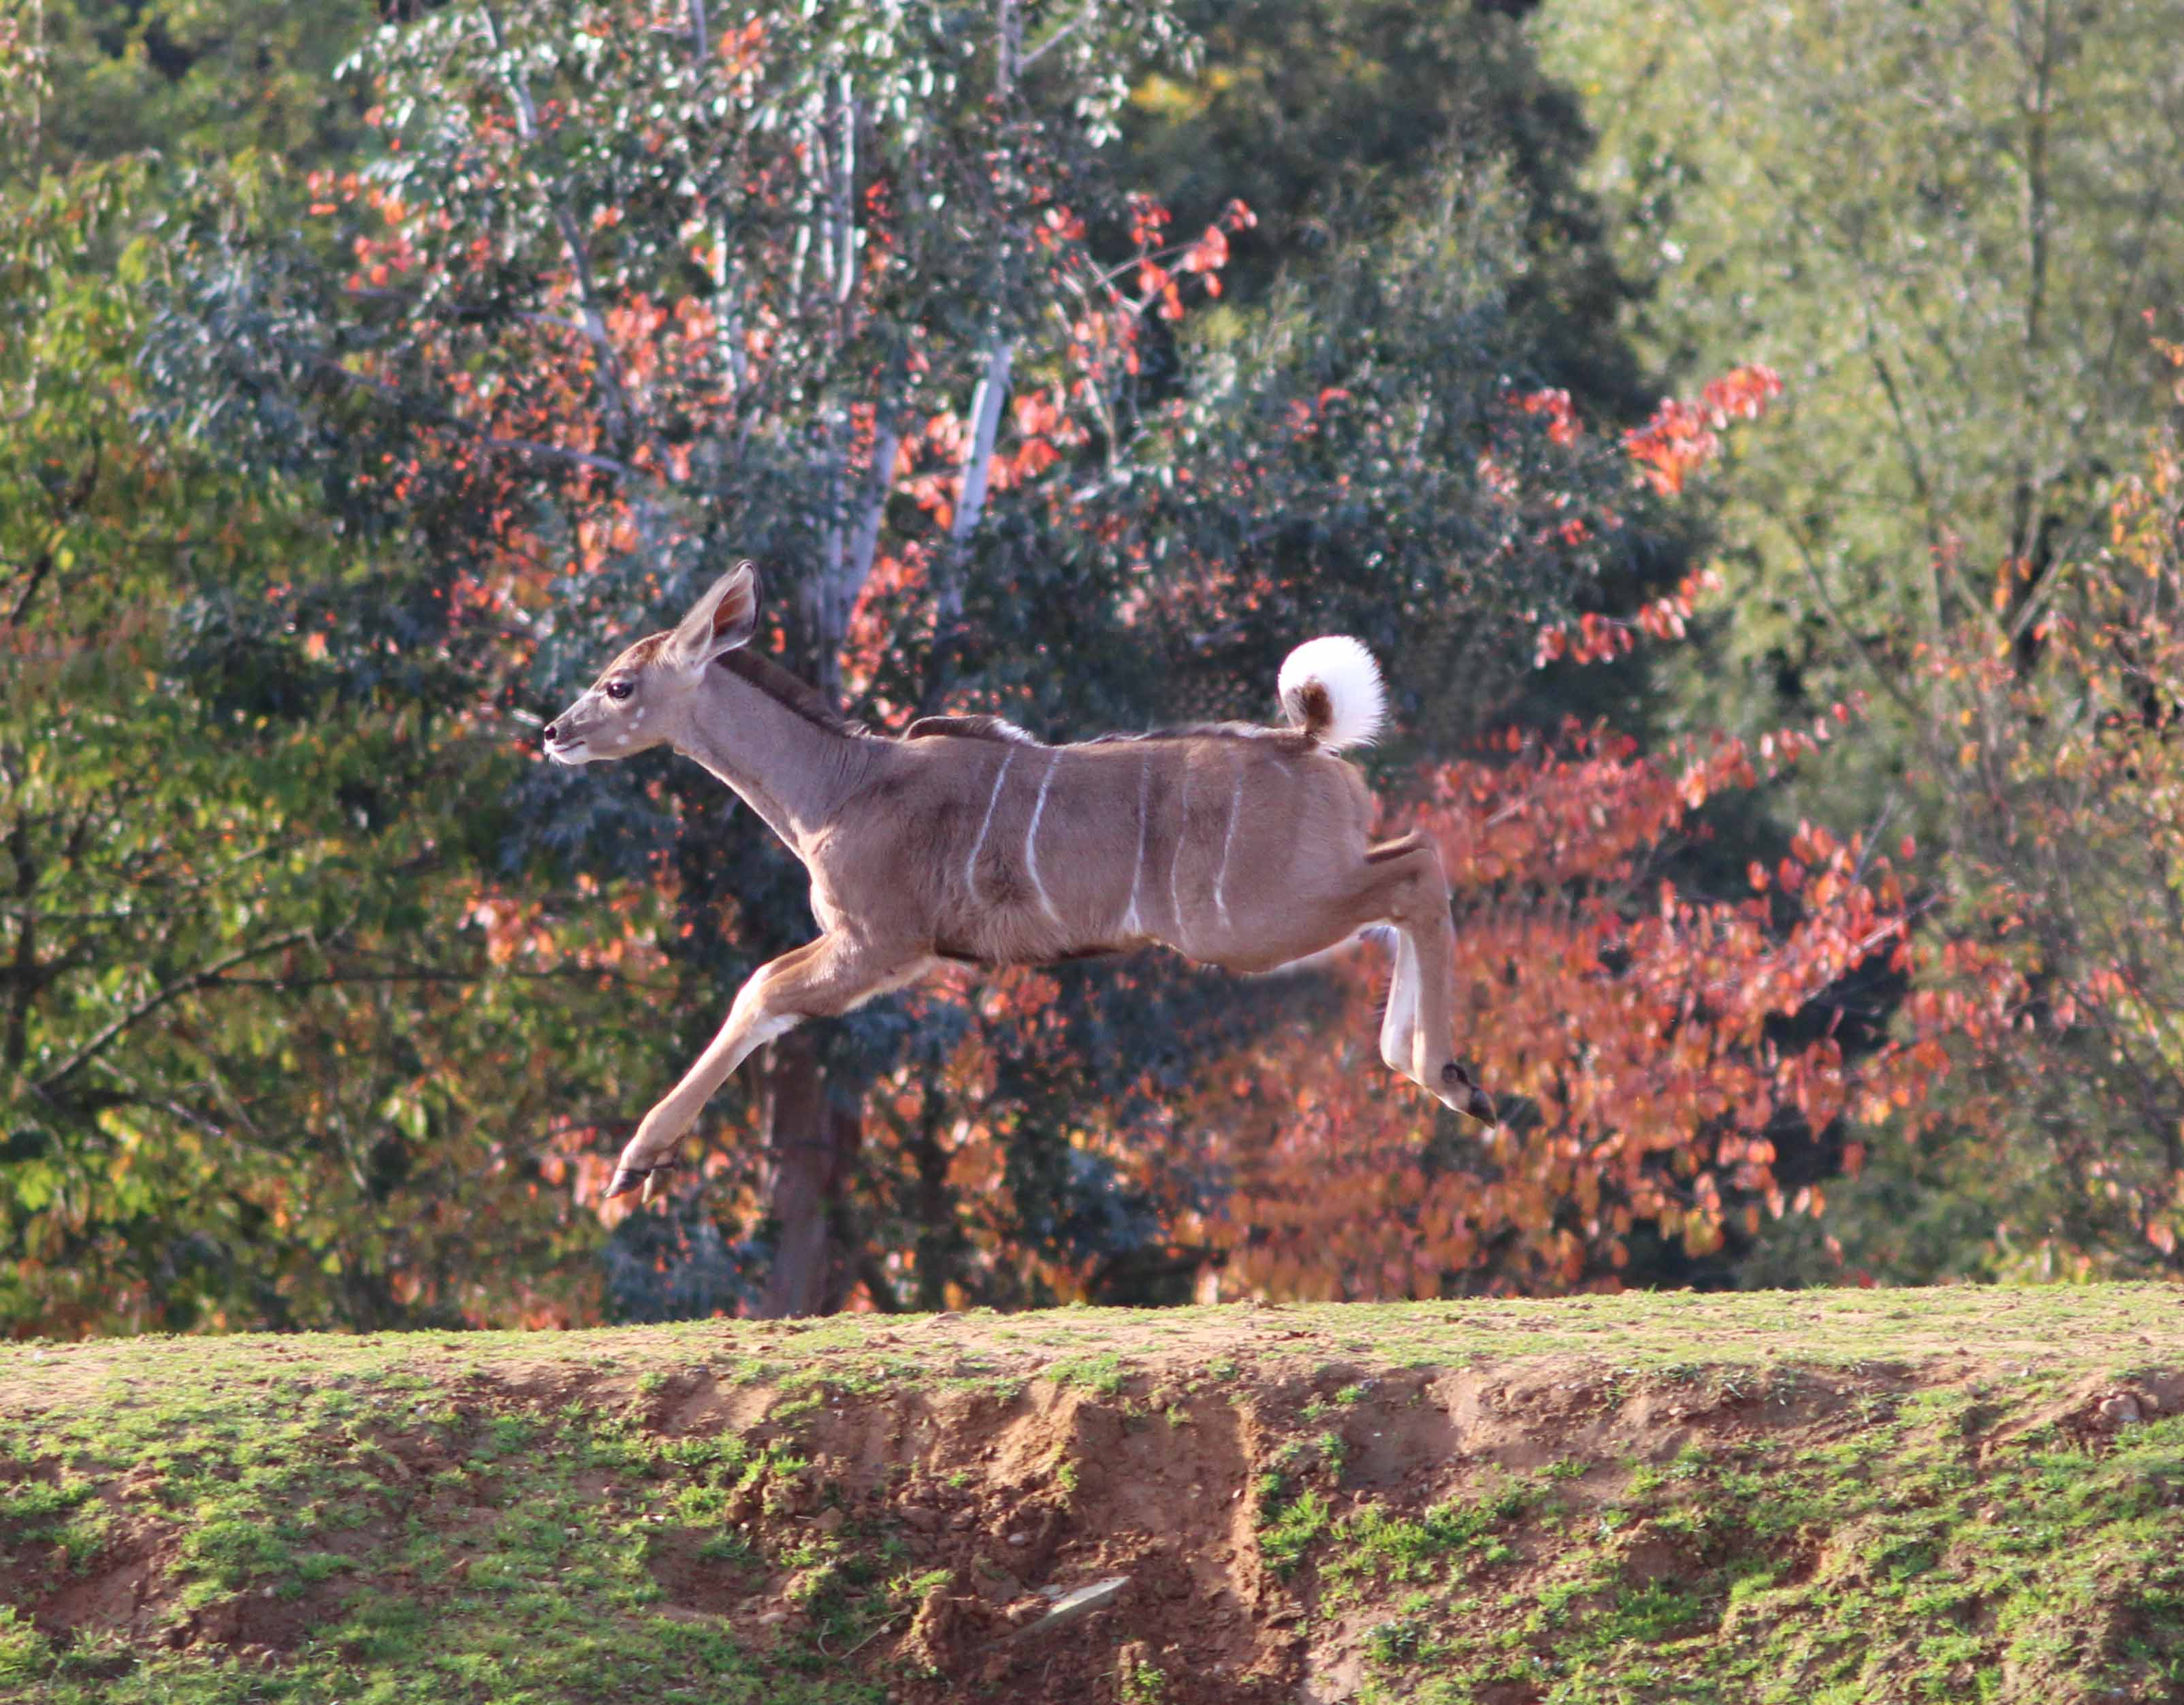 Our kudu calf has a spring in his step!